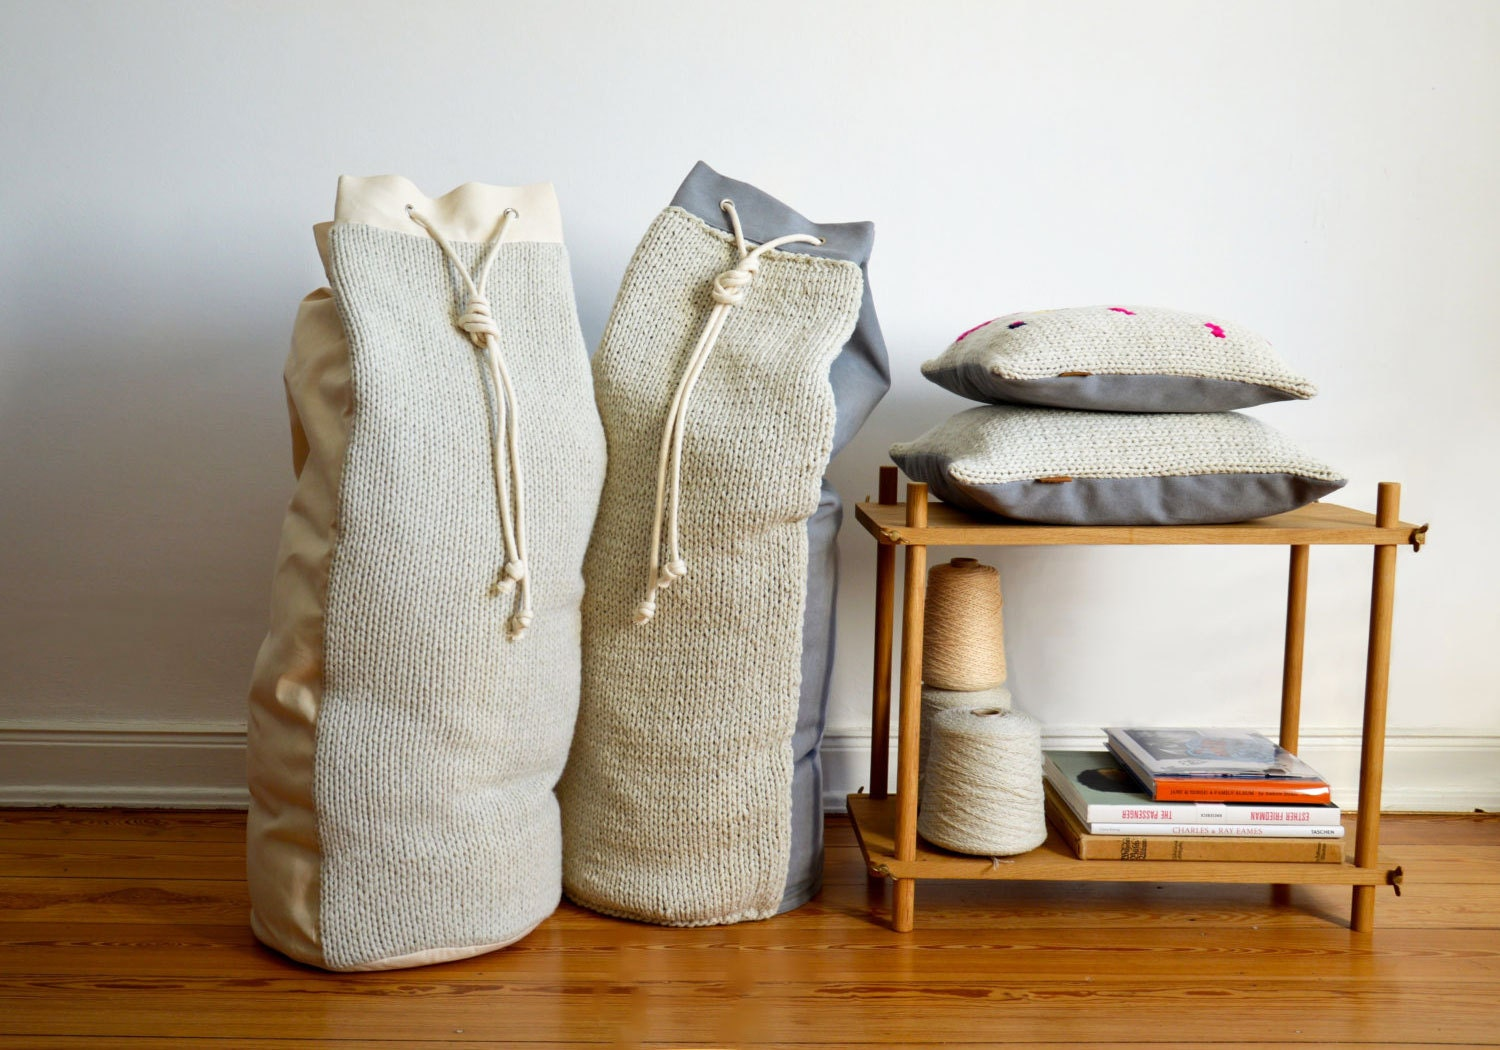 hjartslag pillows and storage bags